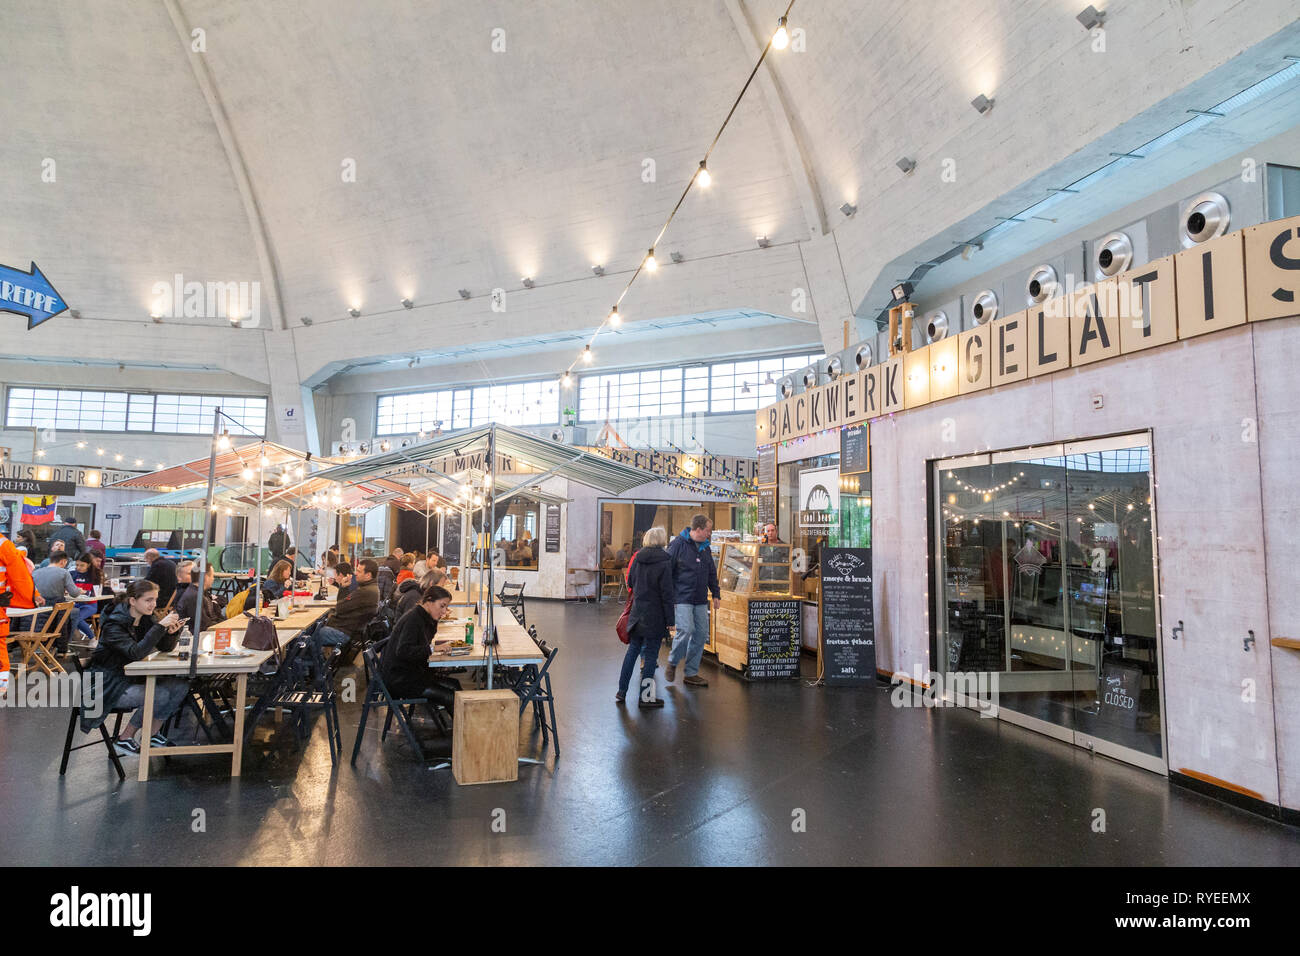 Food Court inside the Market Hall in Basel, Switzerland - Stock Image